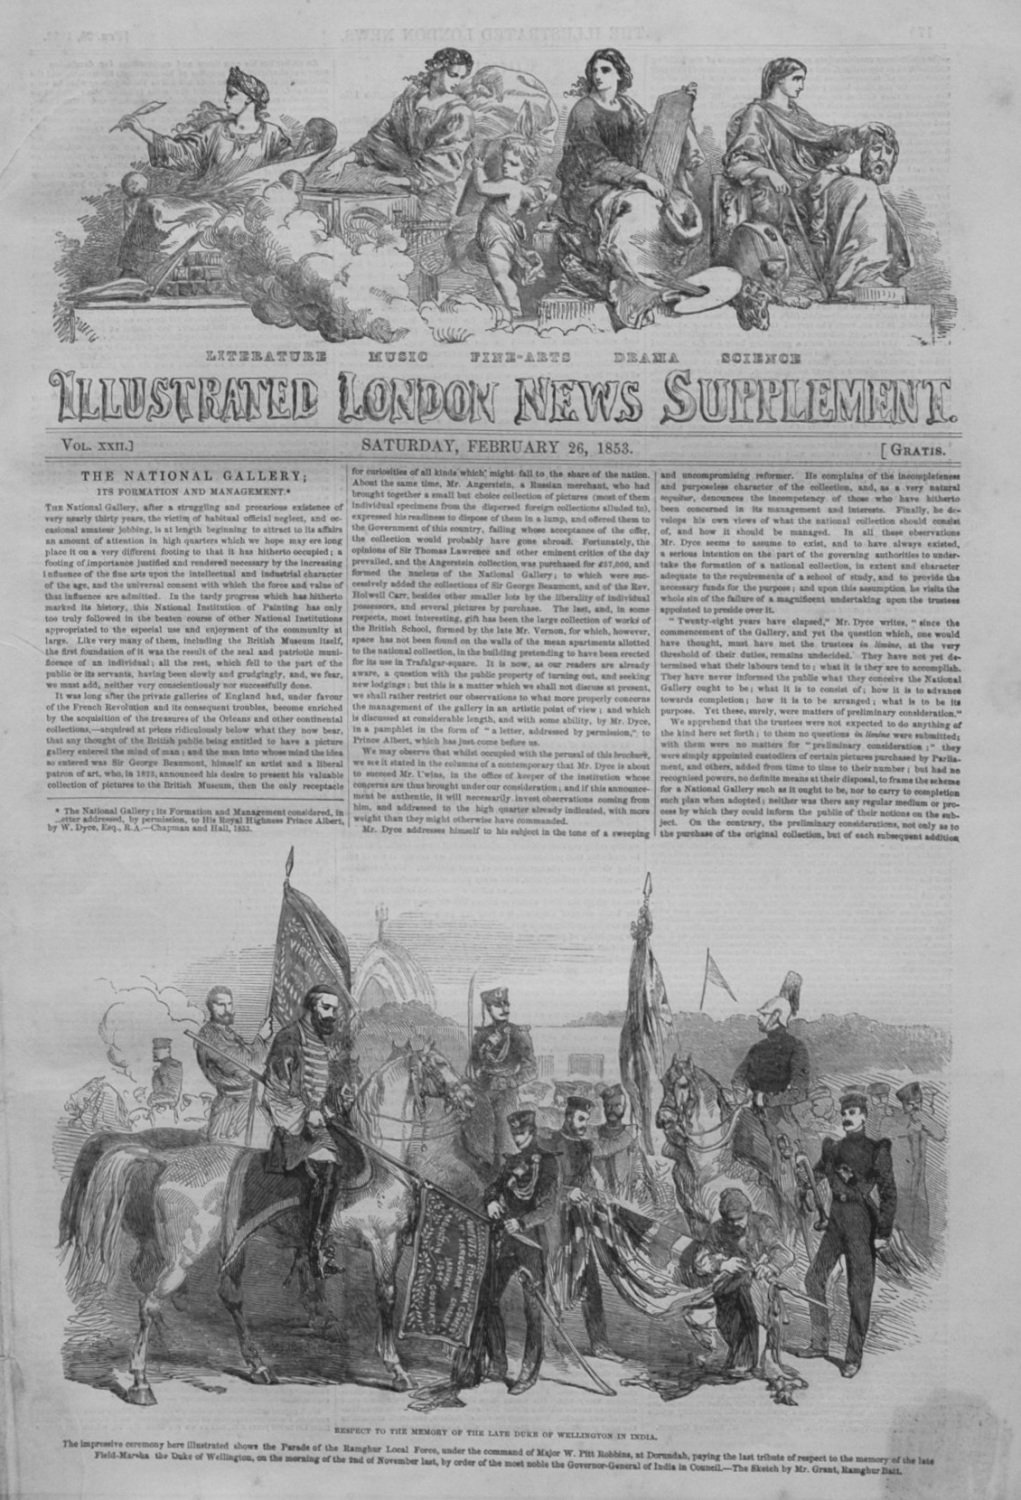 Illustrated London News (Supplement) February 26th 1853.